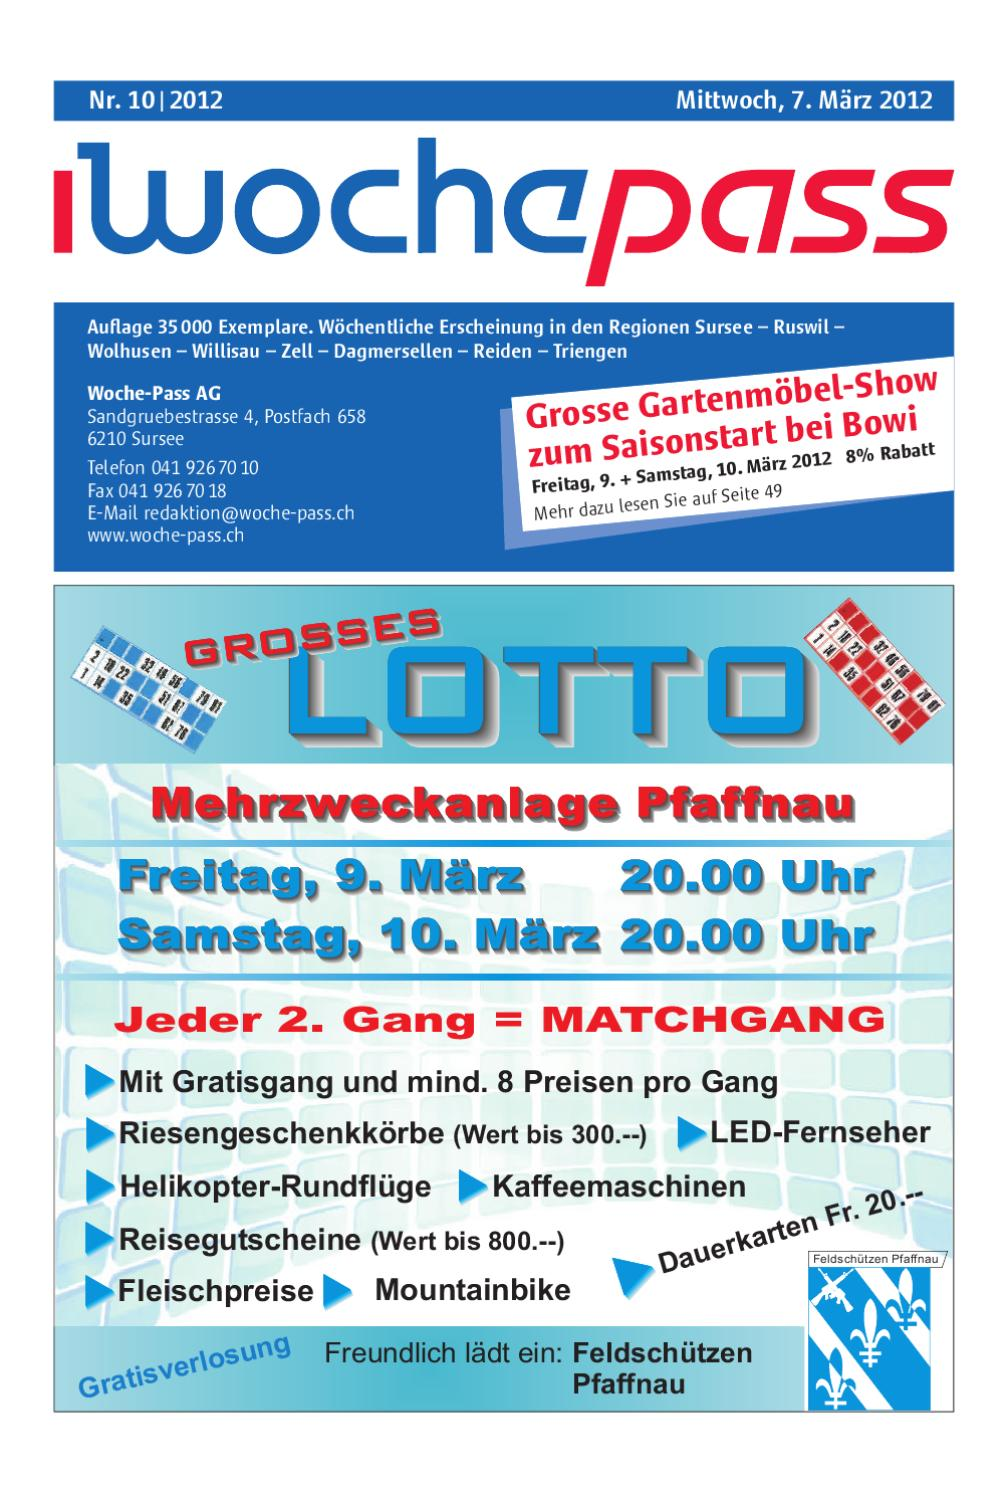 Woche-Pass | KW46 | 13. November 2013 by Woche-Pass AG